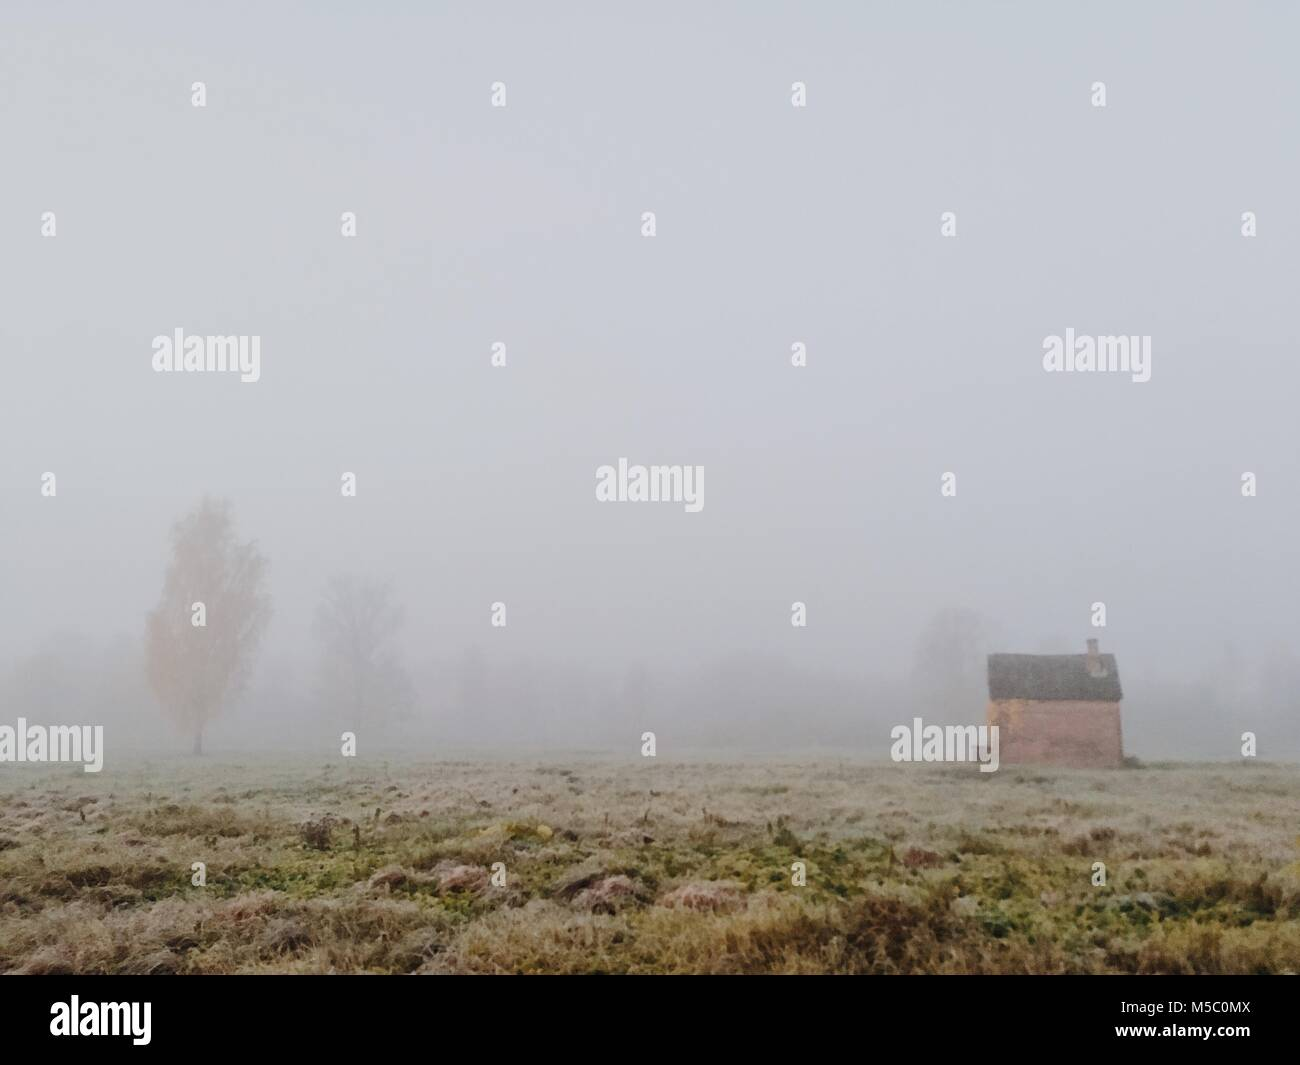 Grass field. Beautiful foggy morning scene with a little shed. - Stock Image